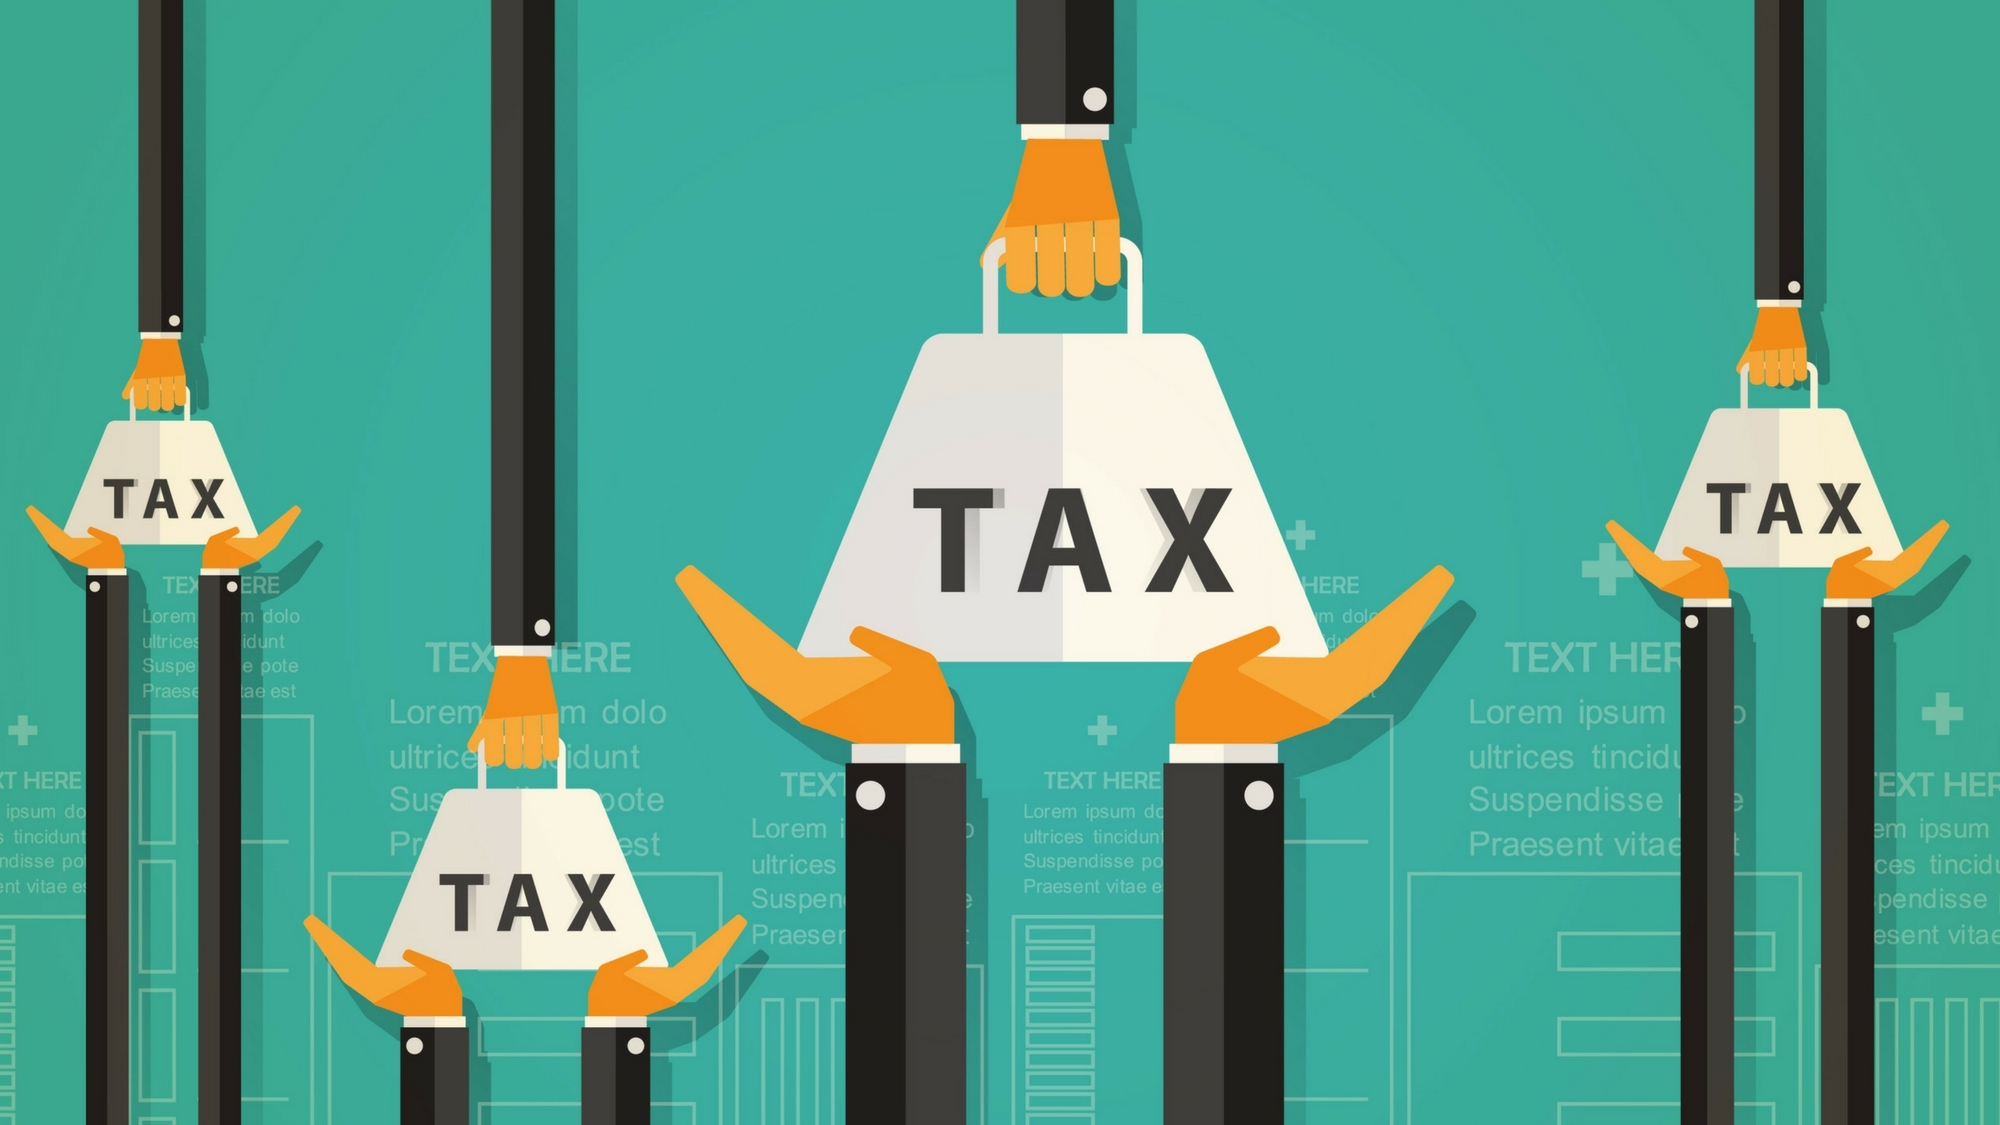 Tax Collection Misses Target by a Wide Margin; Inches up 4.7%